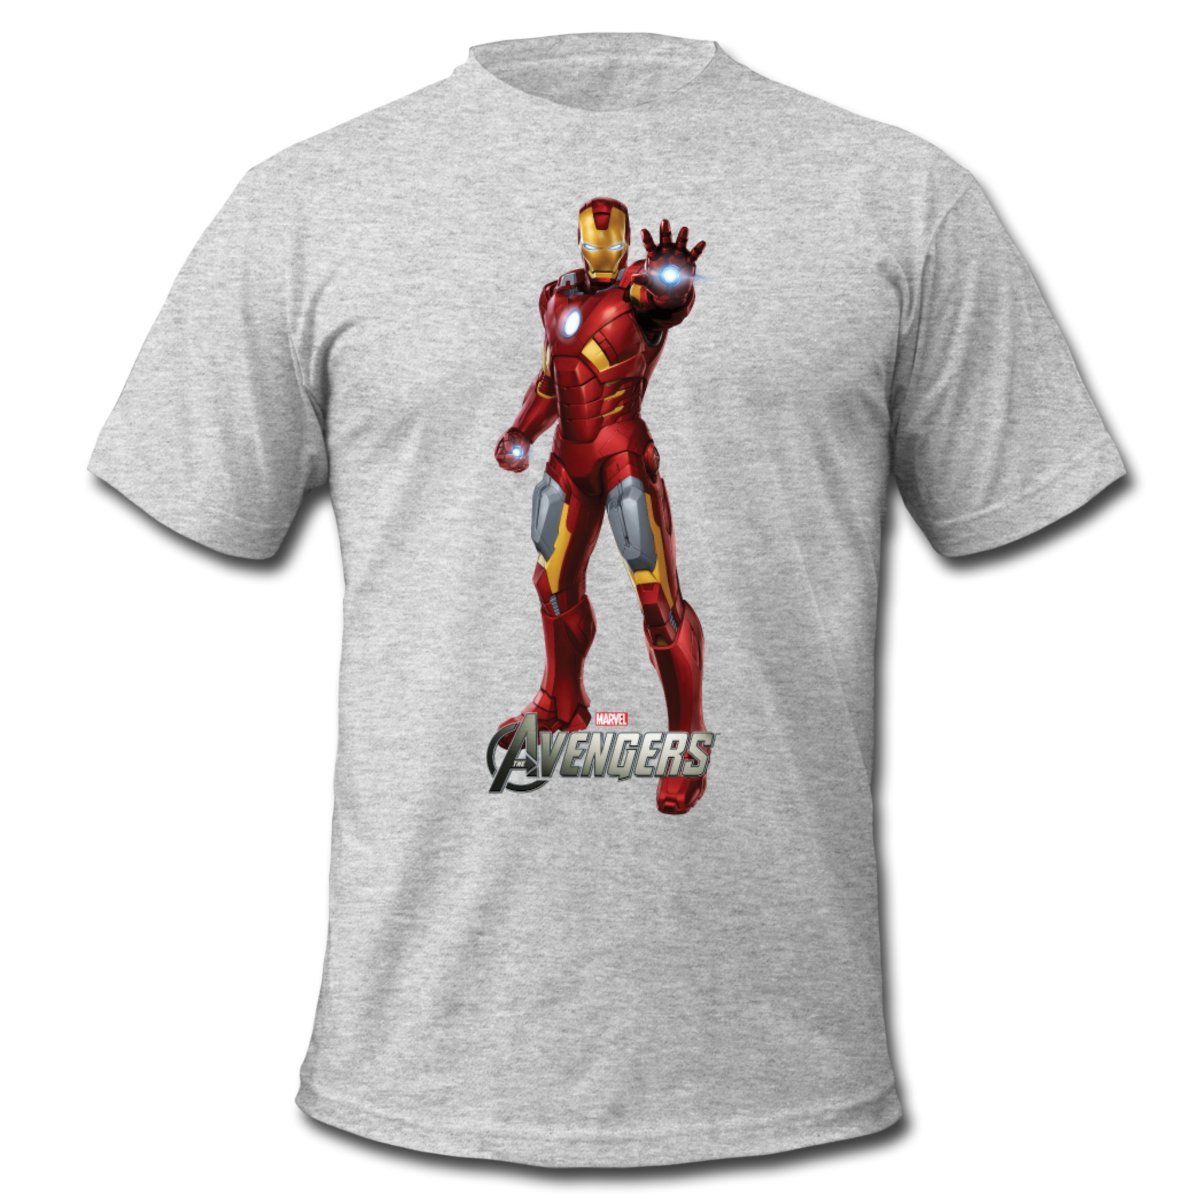 Daily Tee Iron Man t shirt design from spreadshirt white for man Iron Man t shirt design from spreadshirt